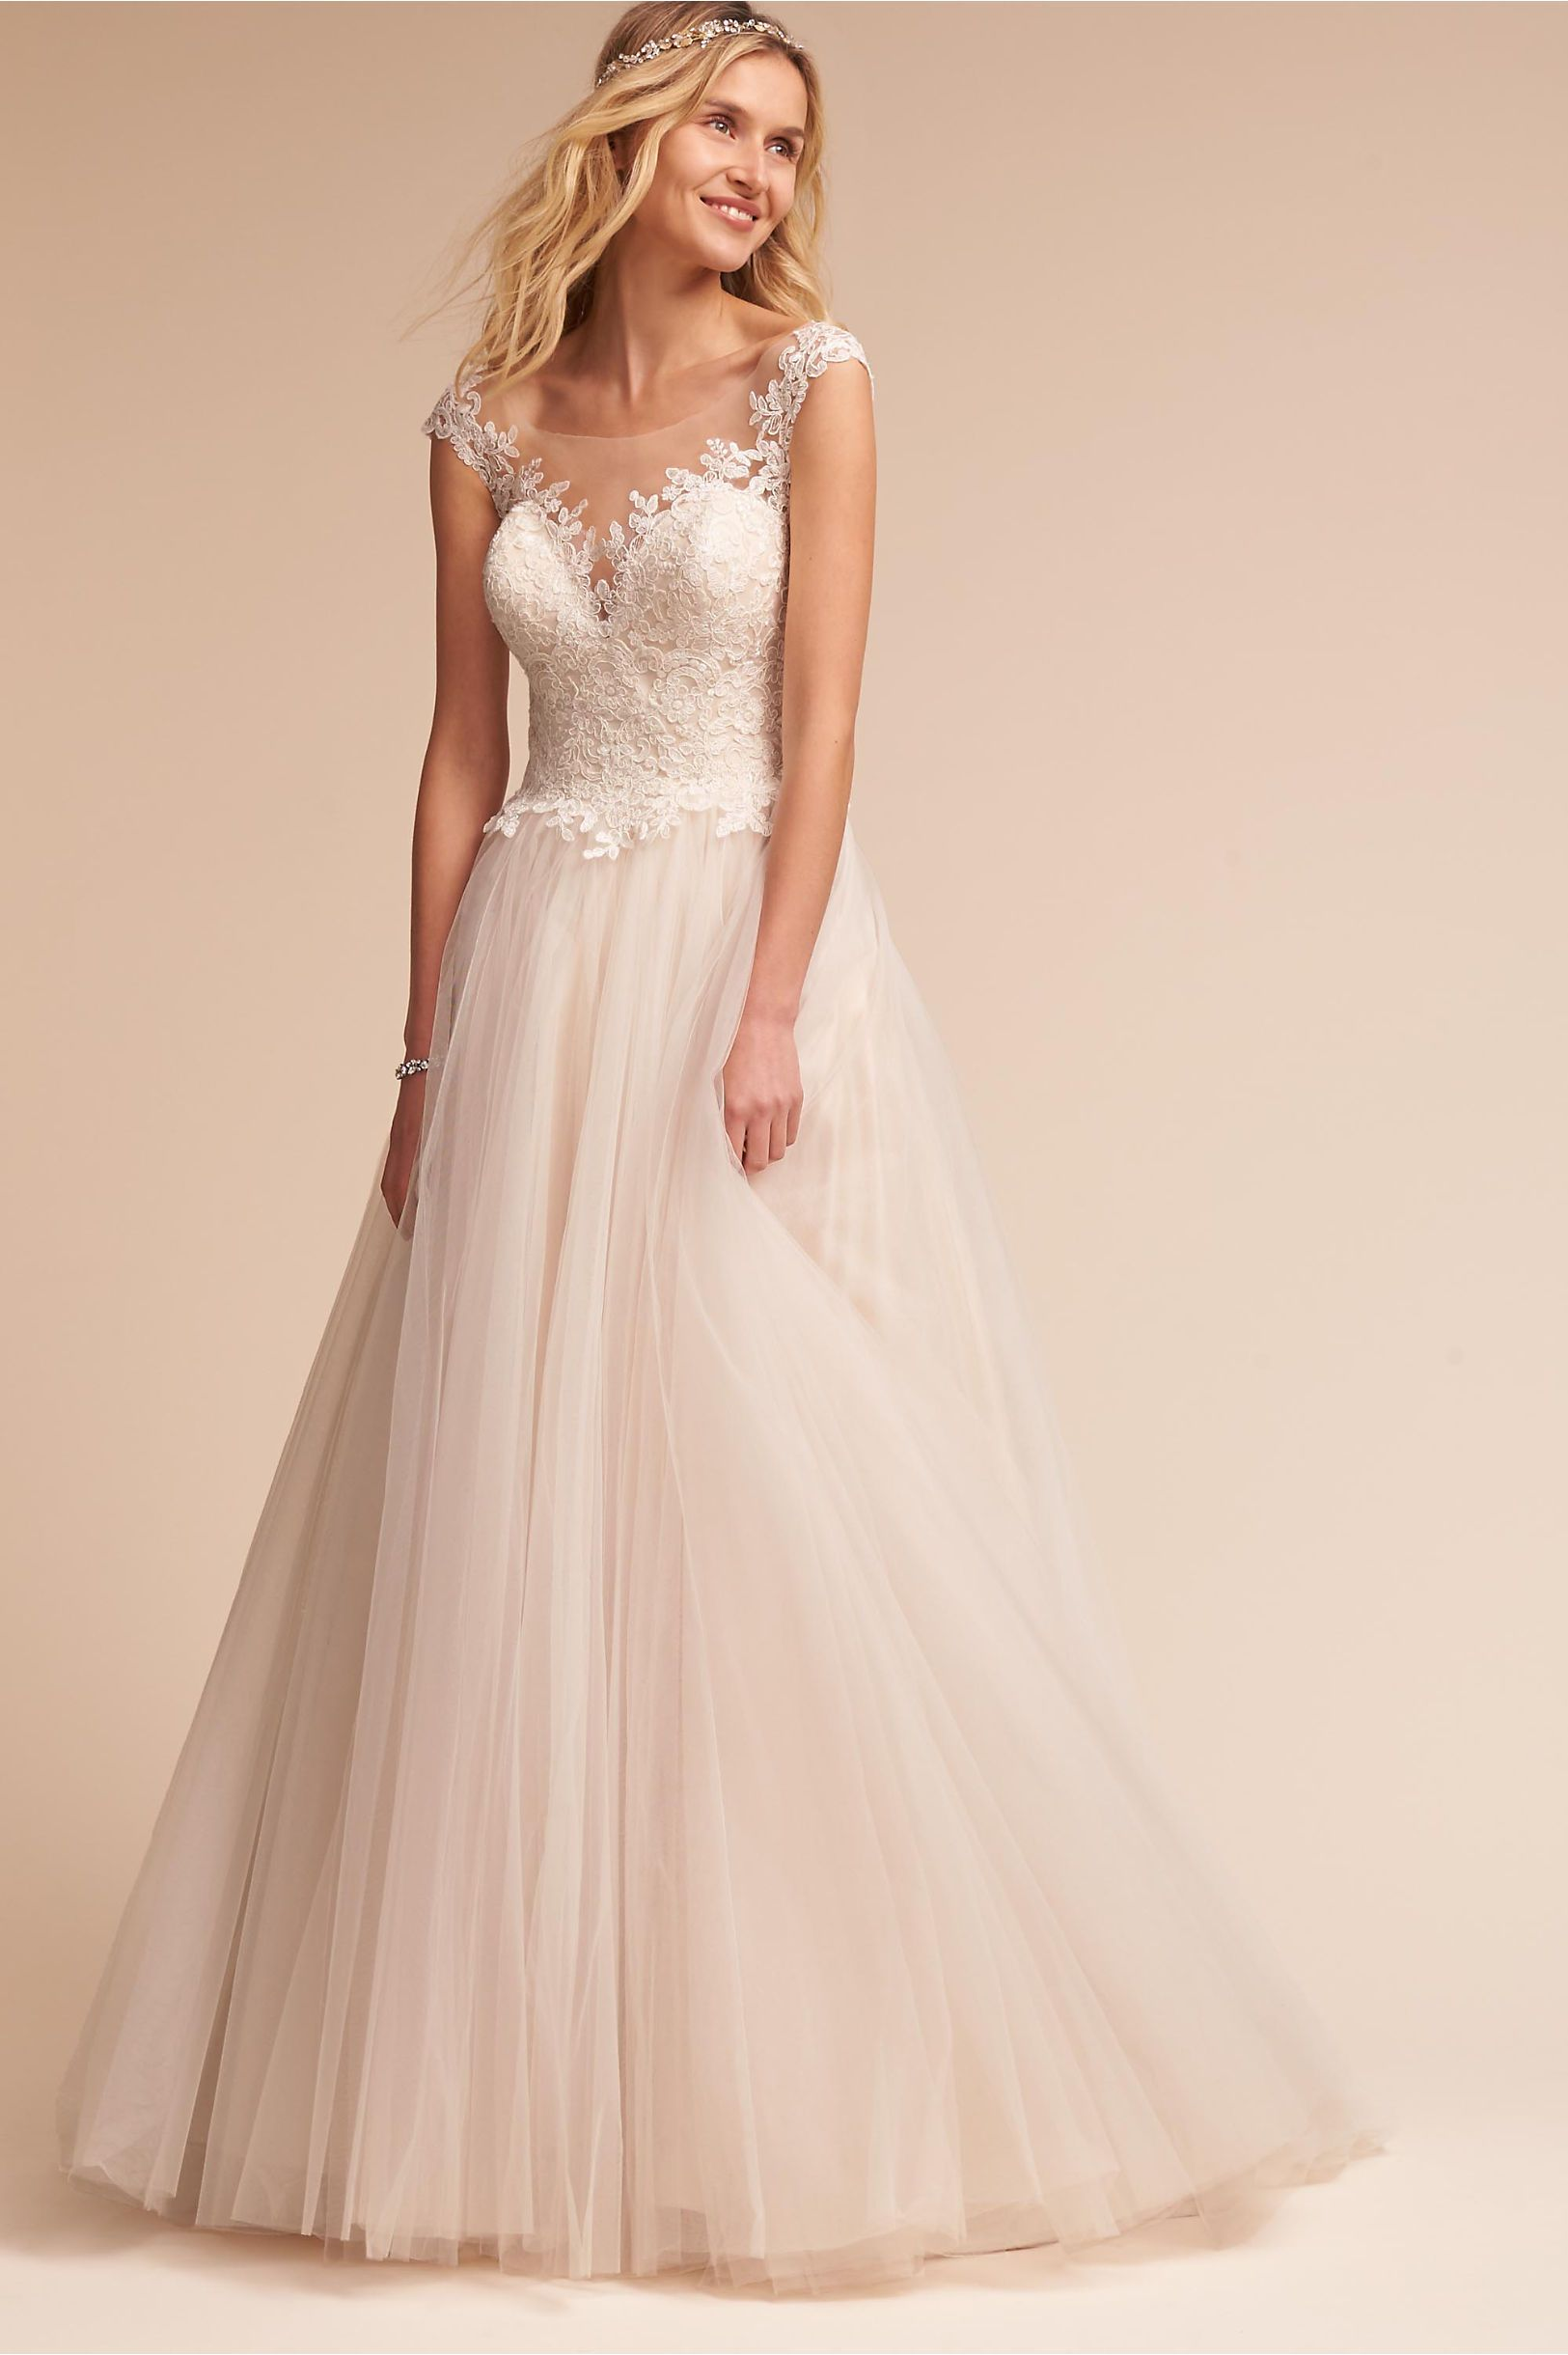 15 Pretty Perfect Wedding Dresses Under 1500 That Won T Break The Bank